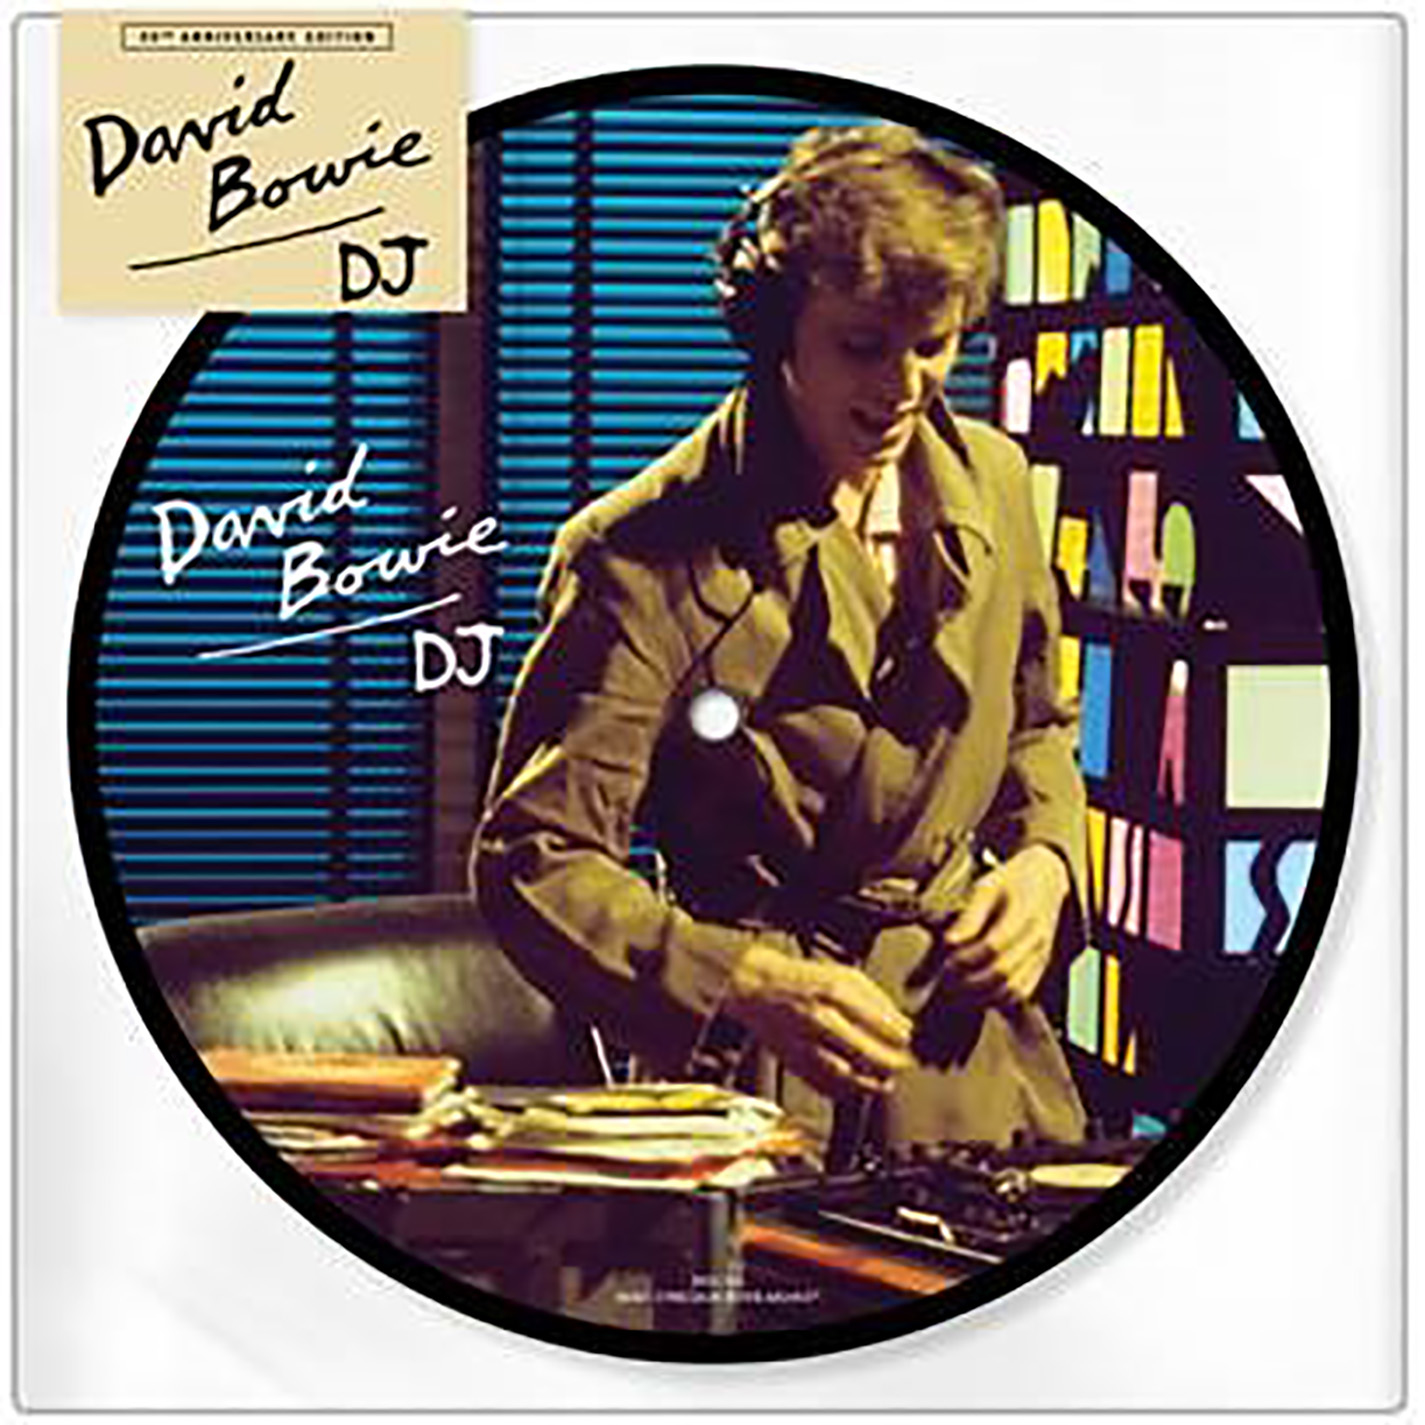 D.J. (40TH ANNIVERSARY) (ANIV)-DAVID BOWIE